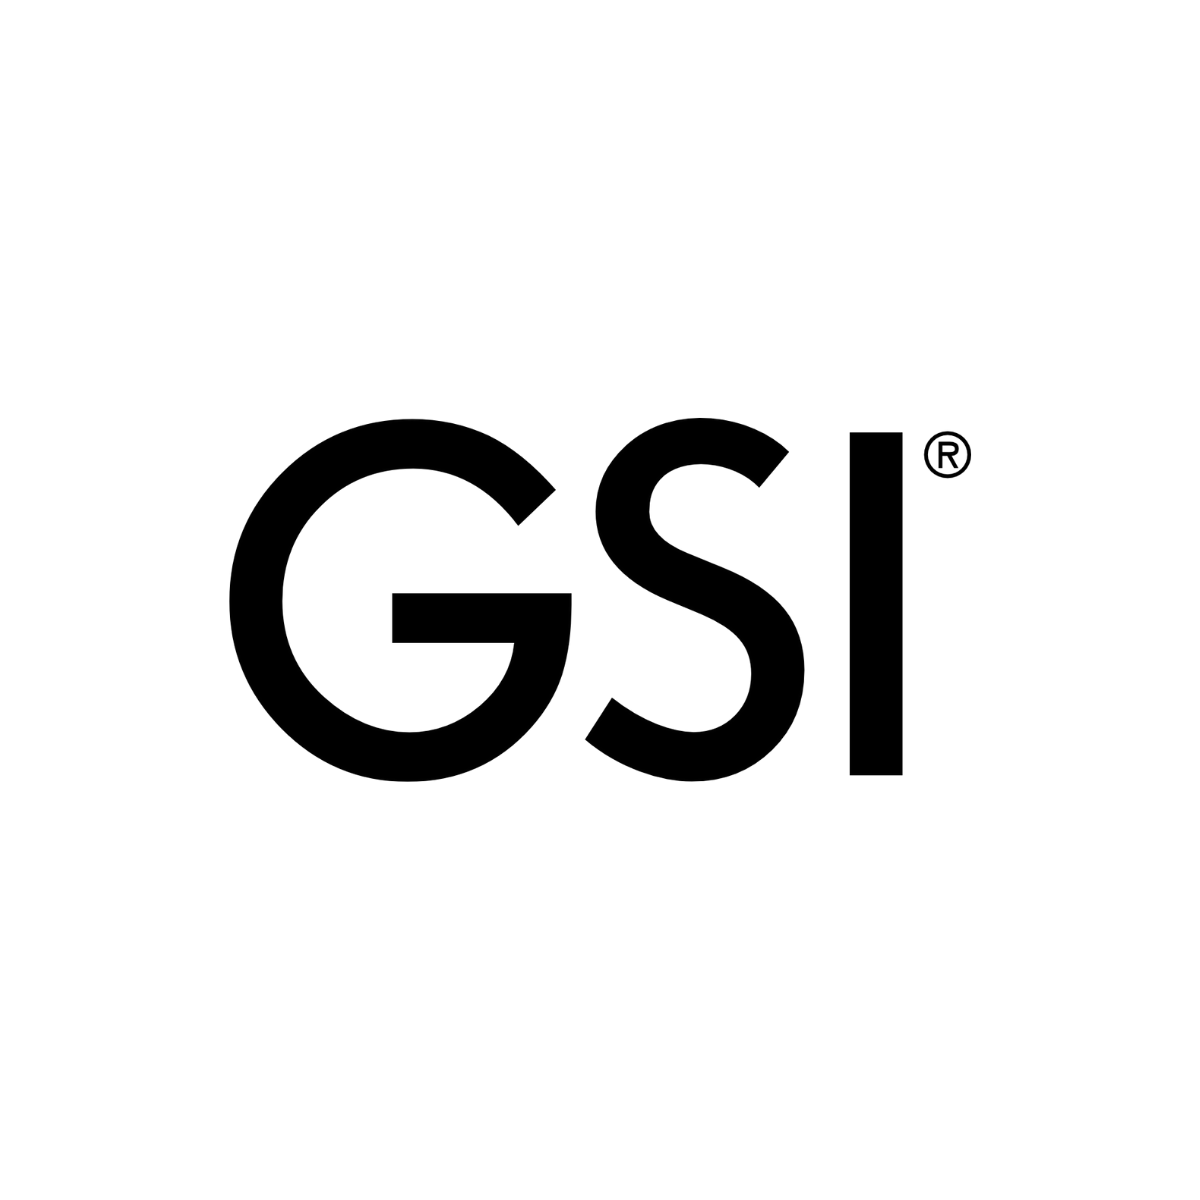 The GSI pricing on Virtual Worlds has been updated to their latest price list #OnePrice #PricebyDesign #VW4D